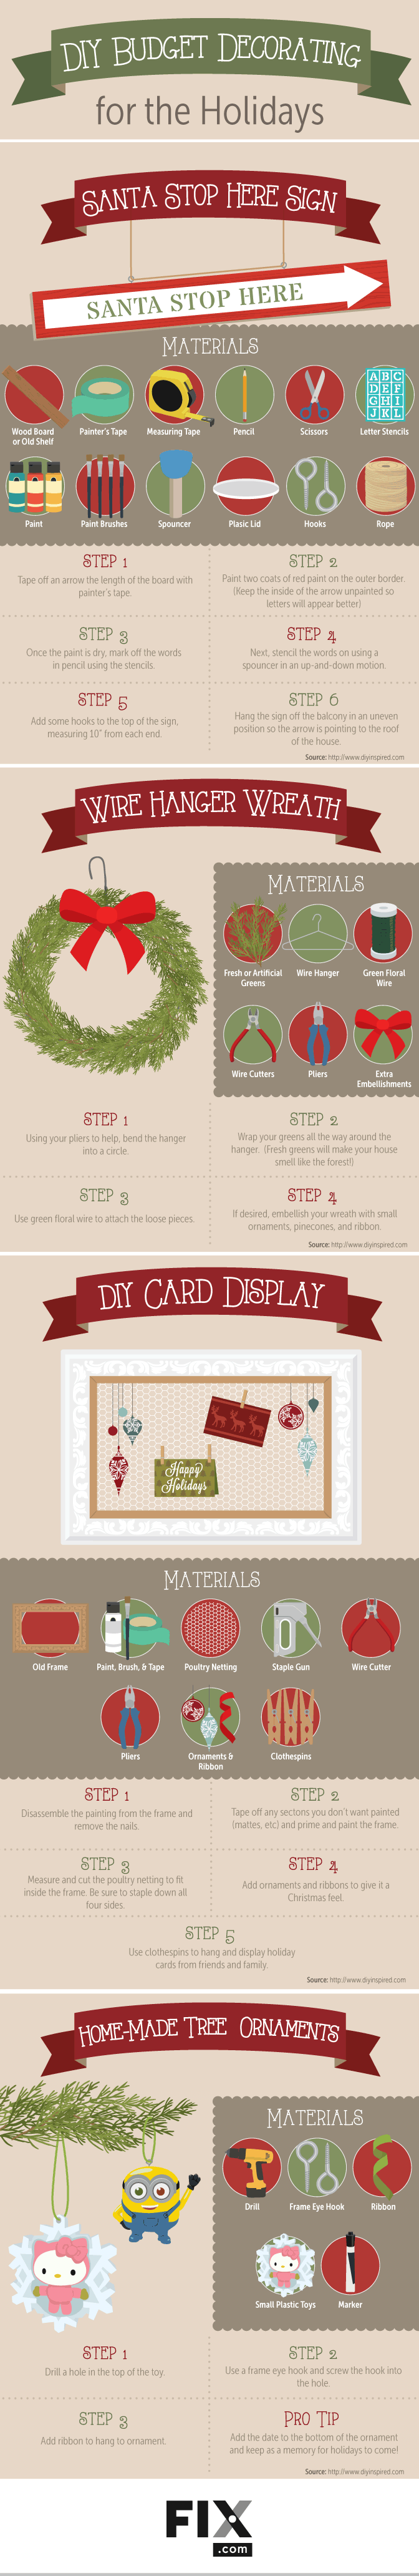 DIY Budget Decorating for the Holidays #Infographic